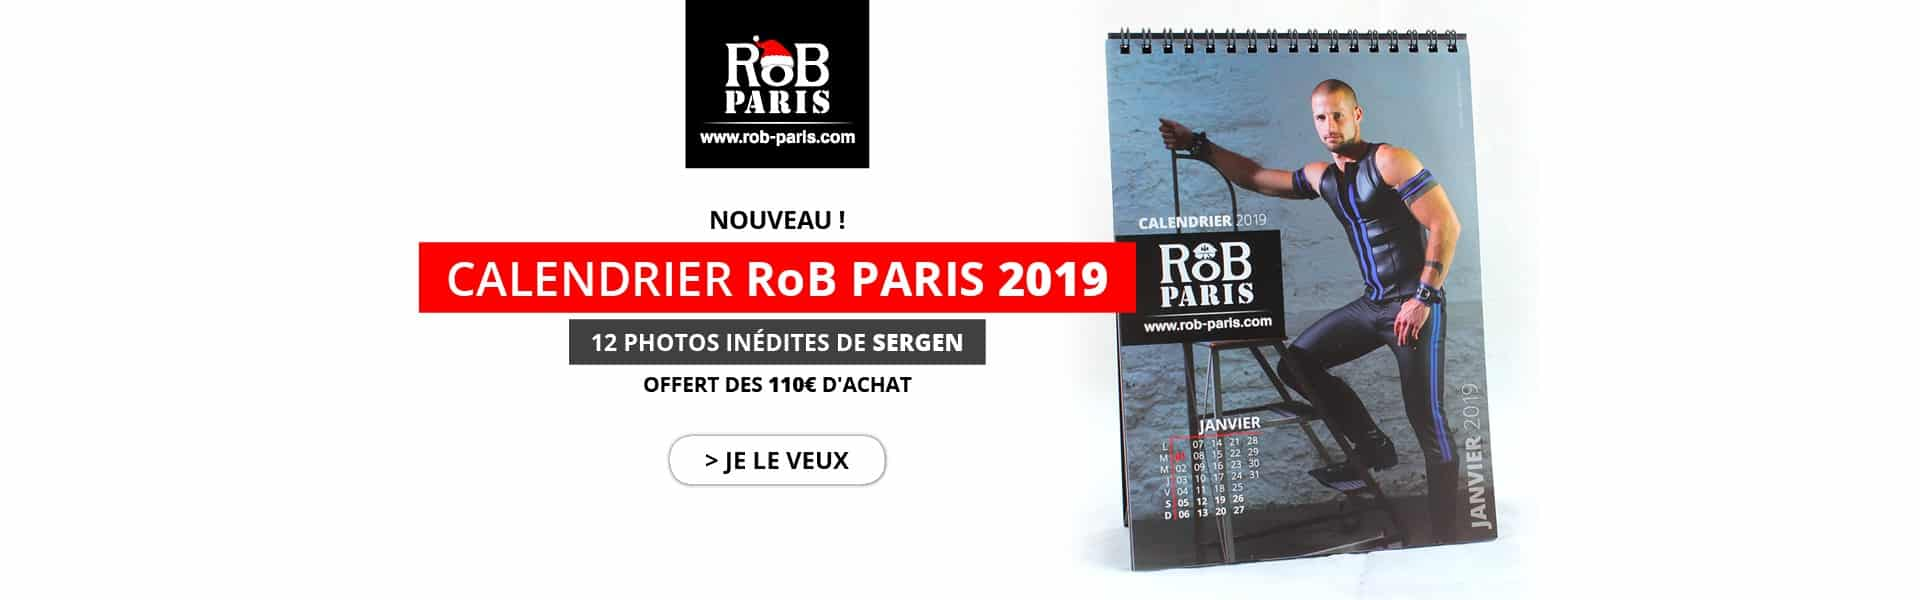 Calendrier RoB Paris